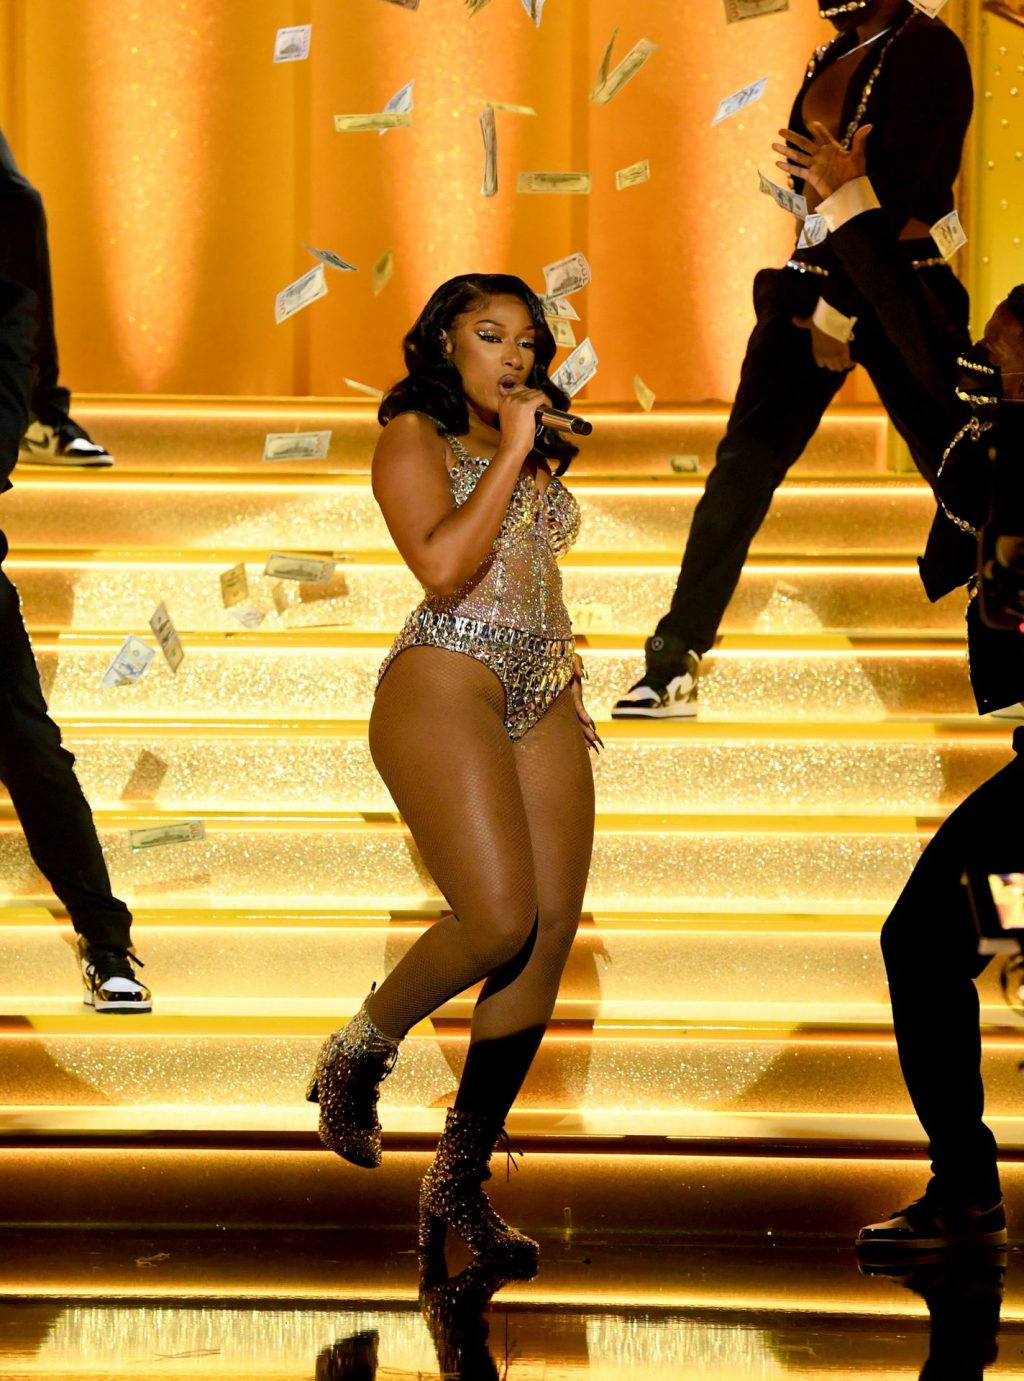 Megan Thee Stallion Displays Her Boobs, Butt and Legs at the 63rd GRAMMY Awards (49 Photos)